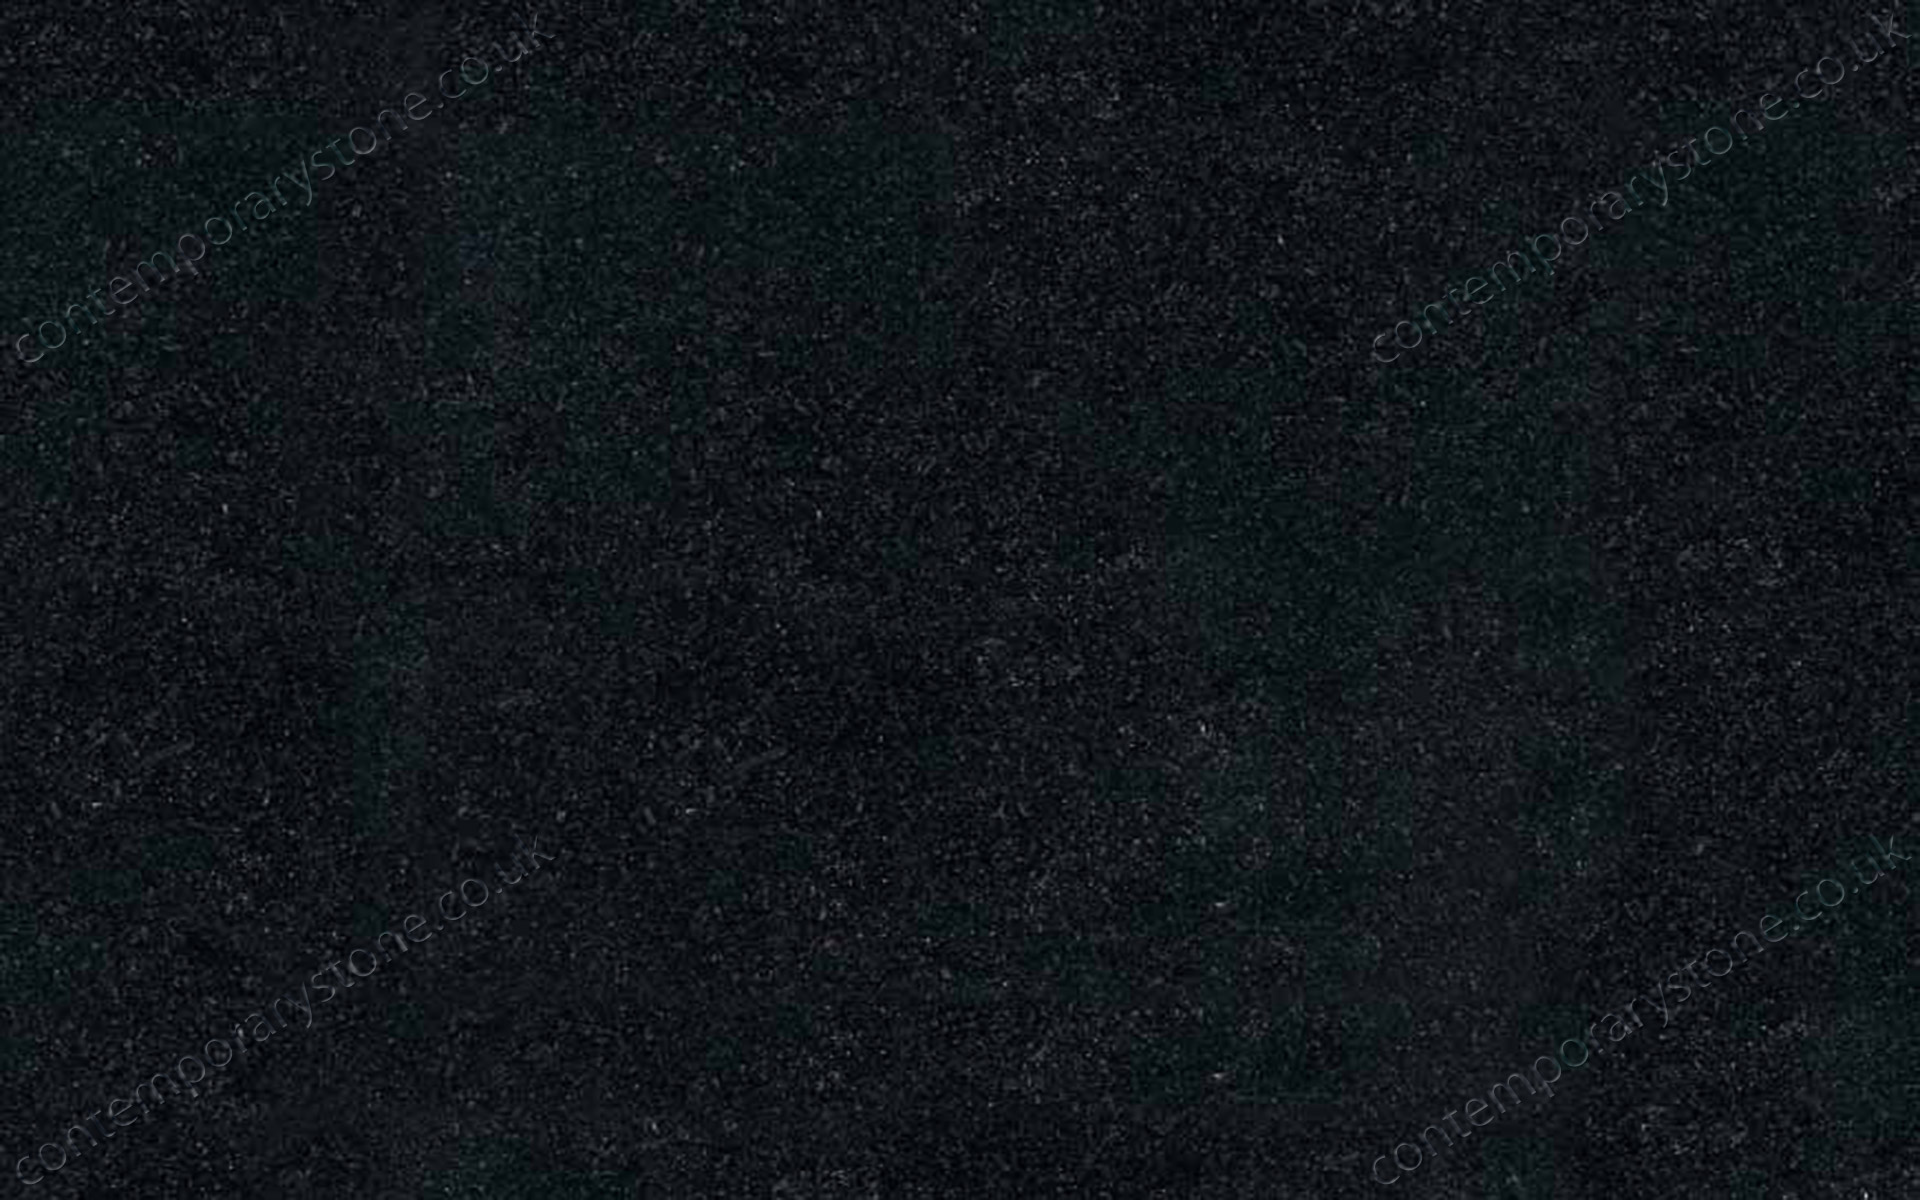 Absolute Black Zimbabwe granite close-up